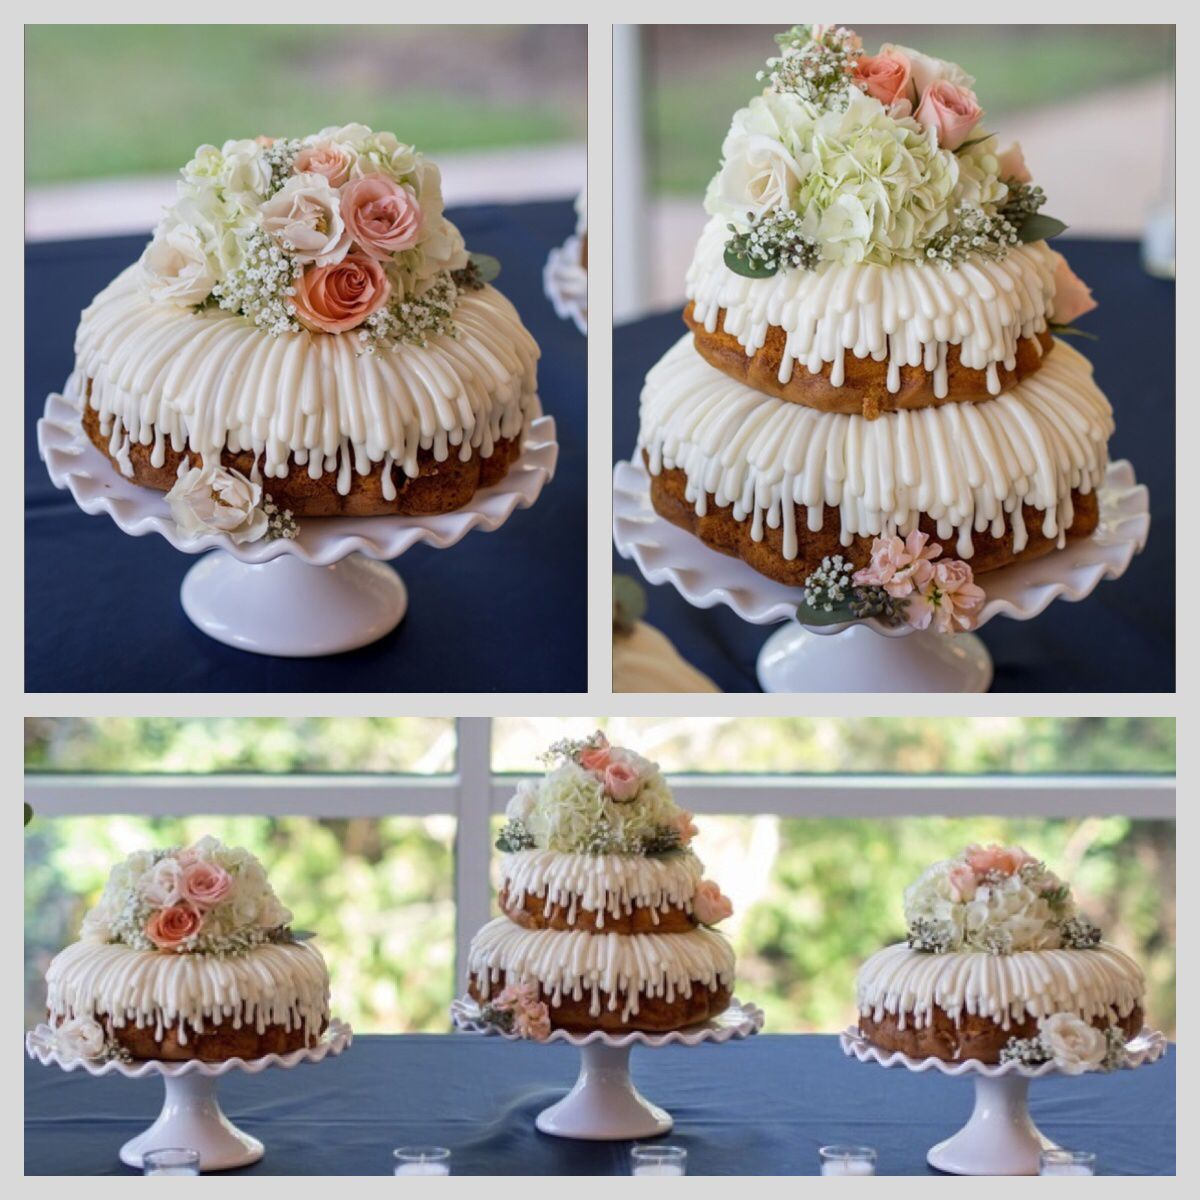 Nothing Bundt Cakes Wedding Cake Ours Was So Beautiful With The